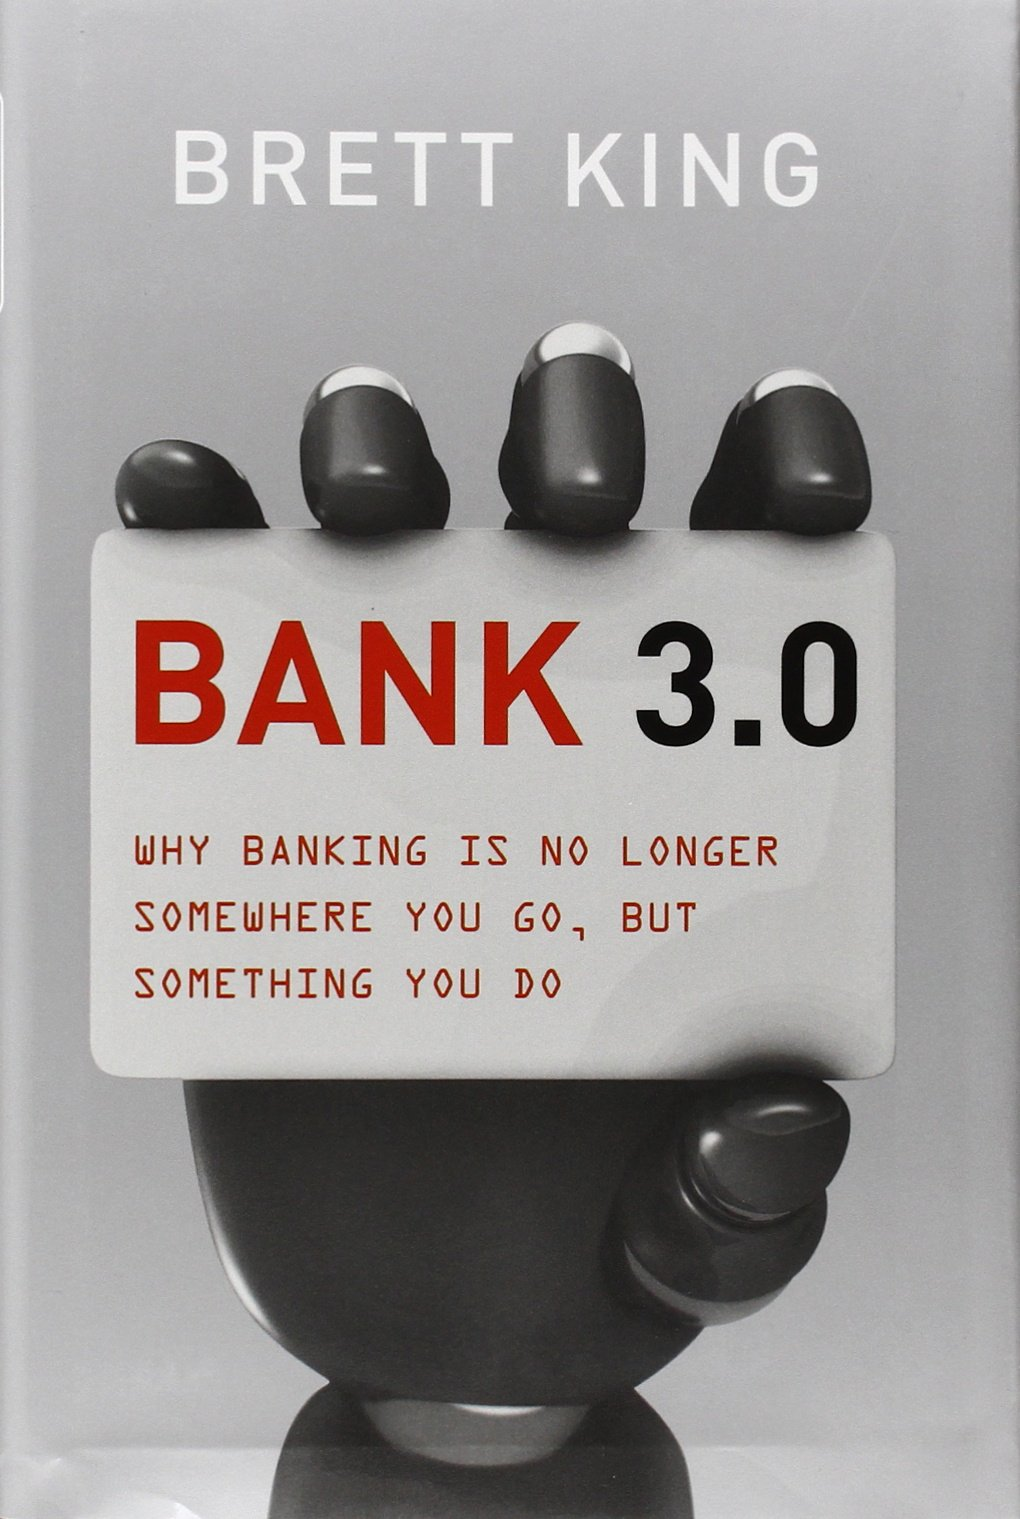 bank why banking is no longer somewhere you go but something bank 3 0 why banking is no longer somewhere you go but something you do brett king 9781118589632 com books